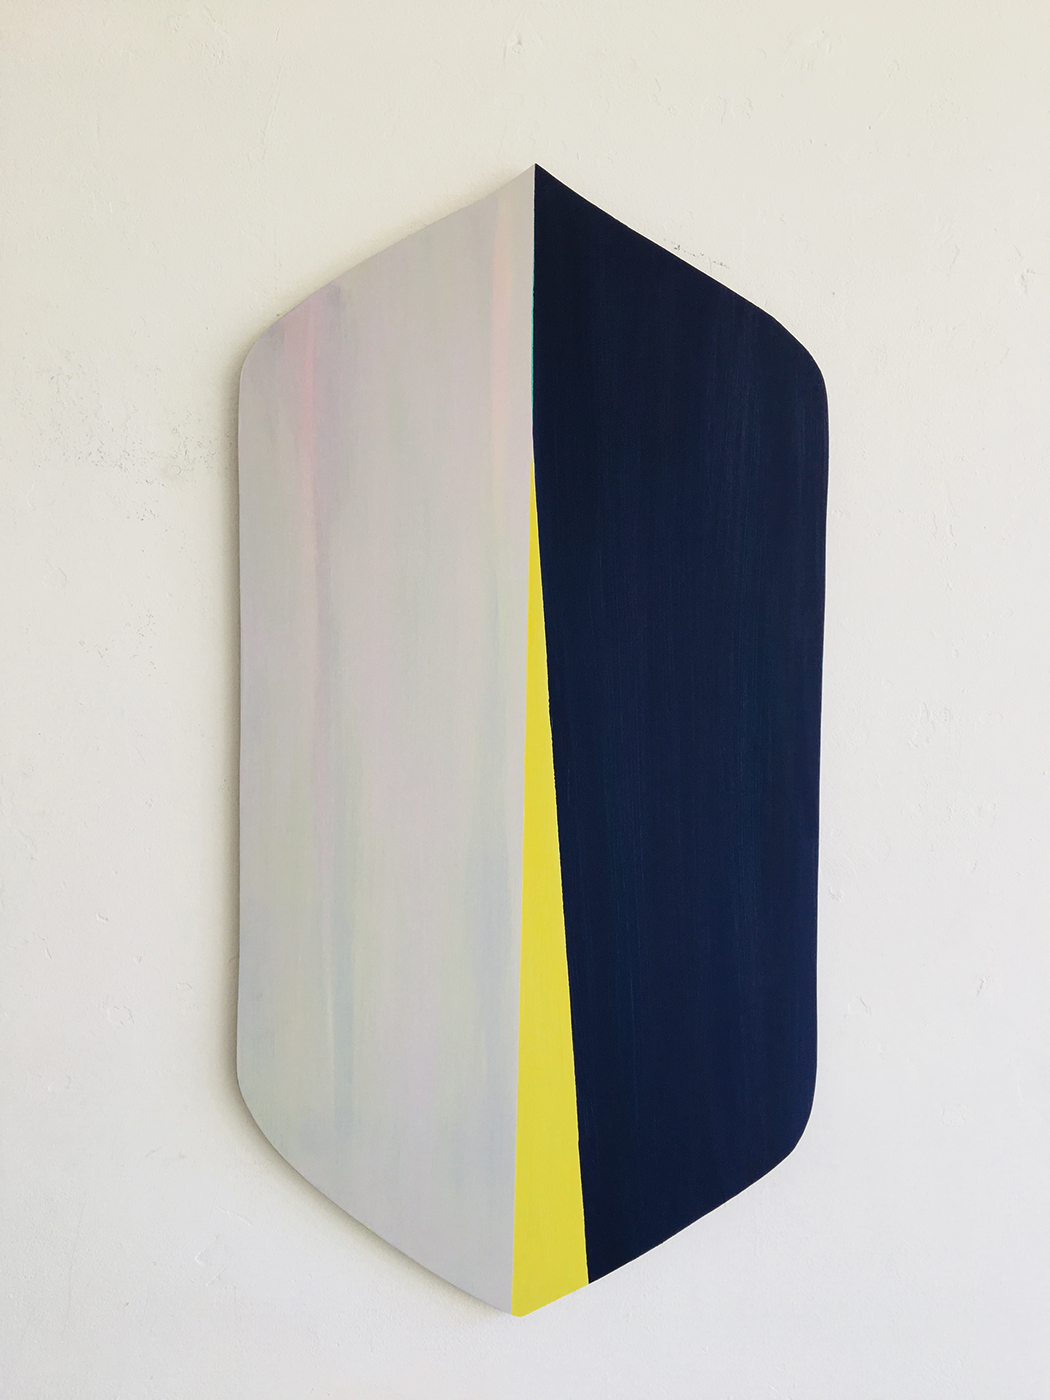 2018 untitled 100 x 50 cm oilpaint on panel